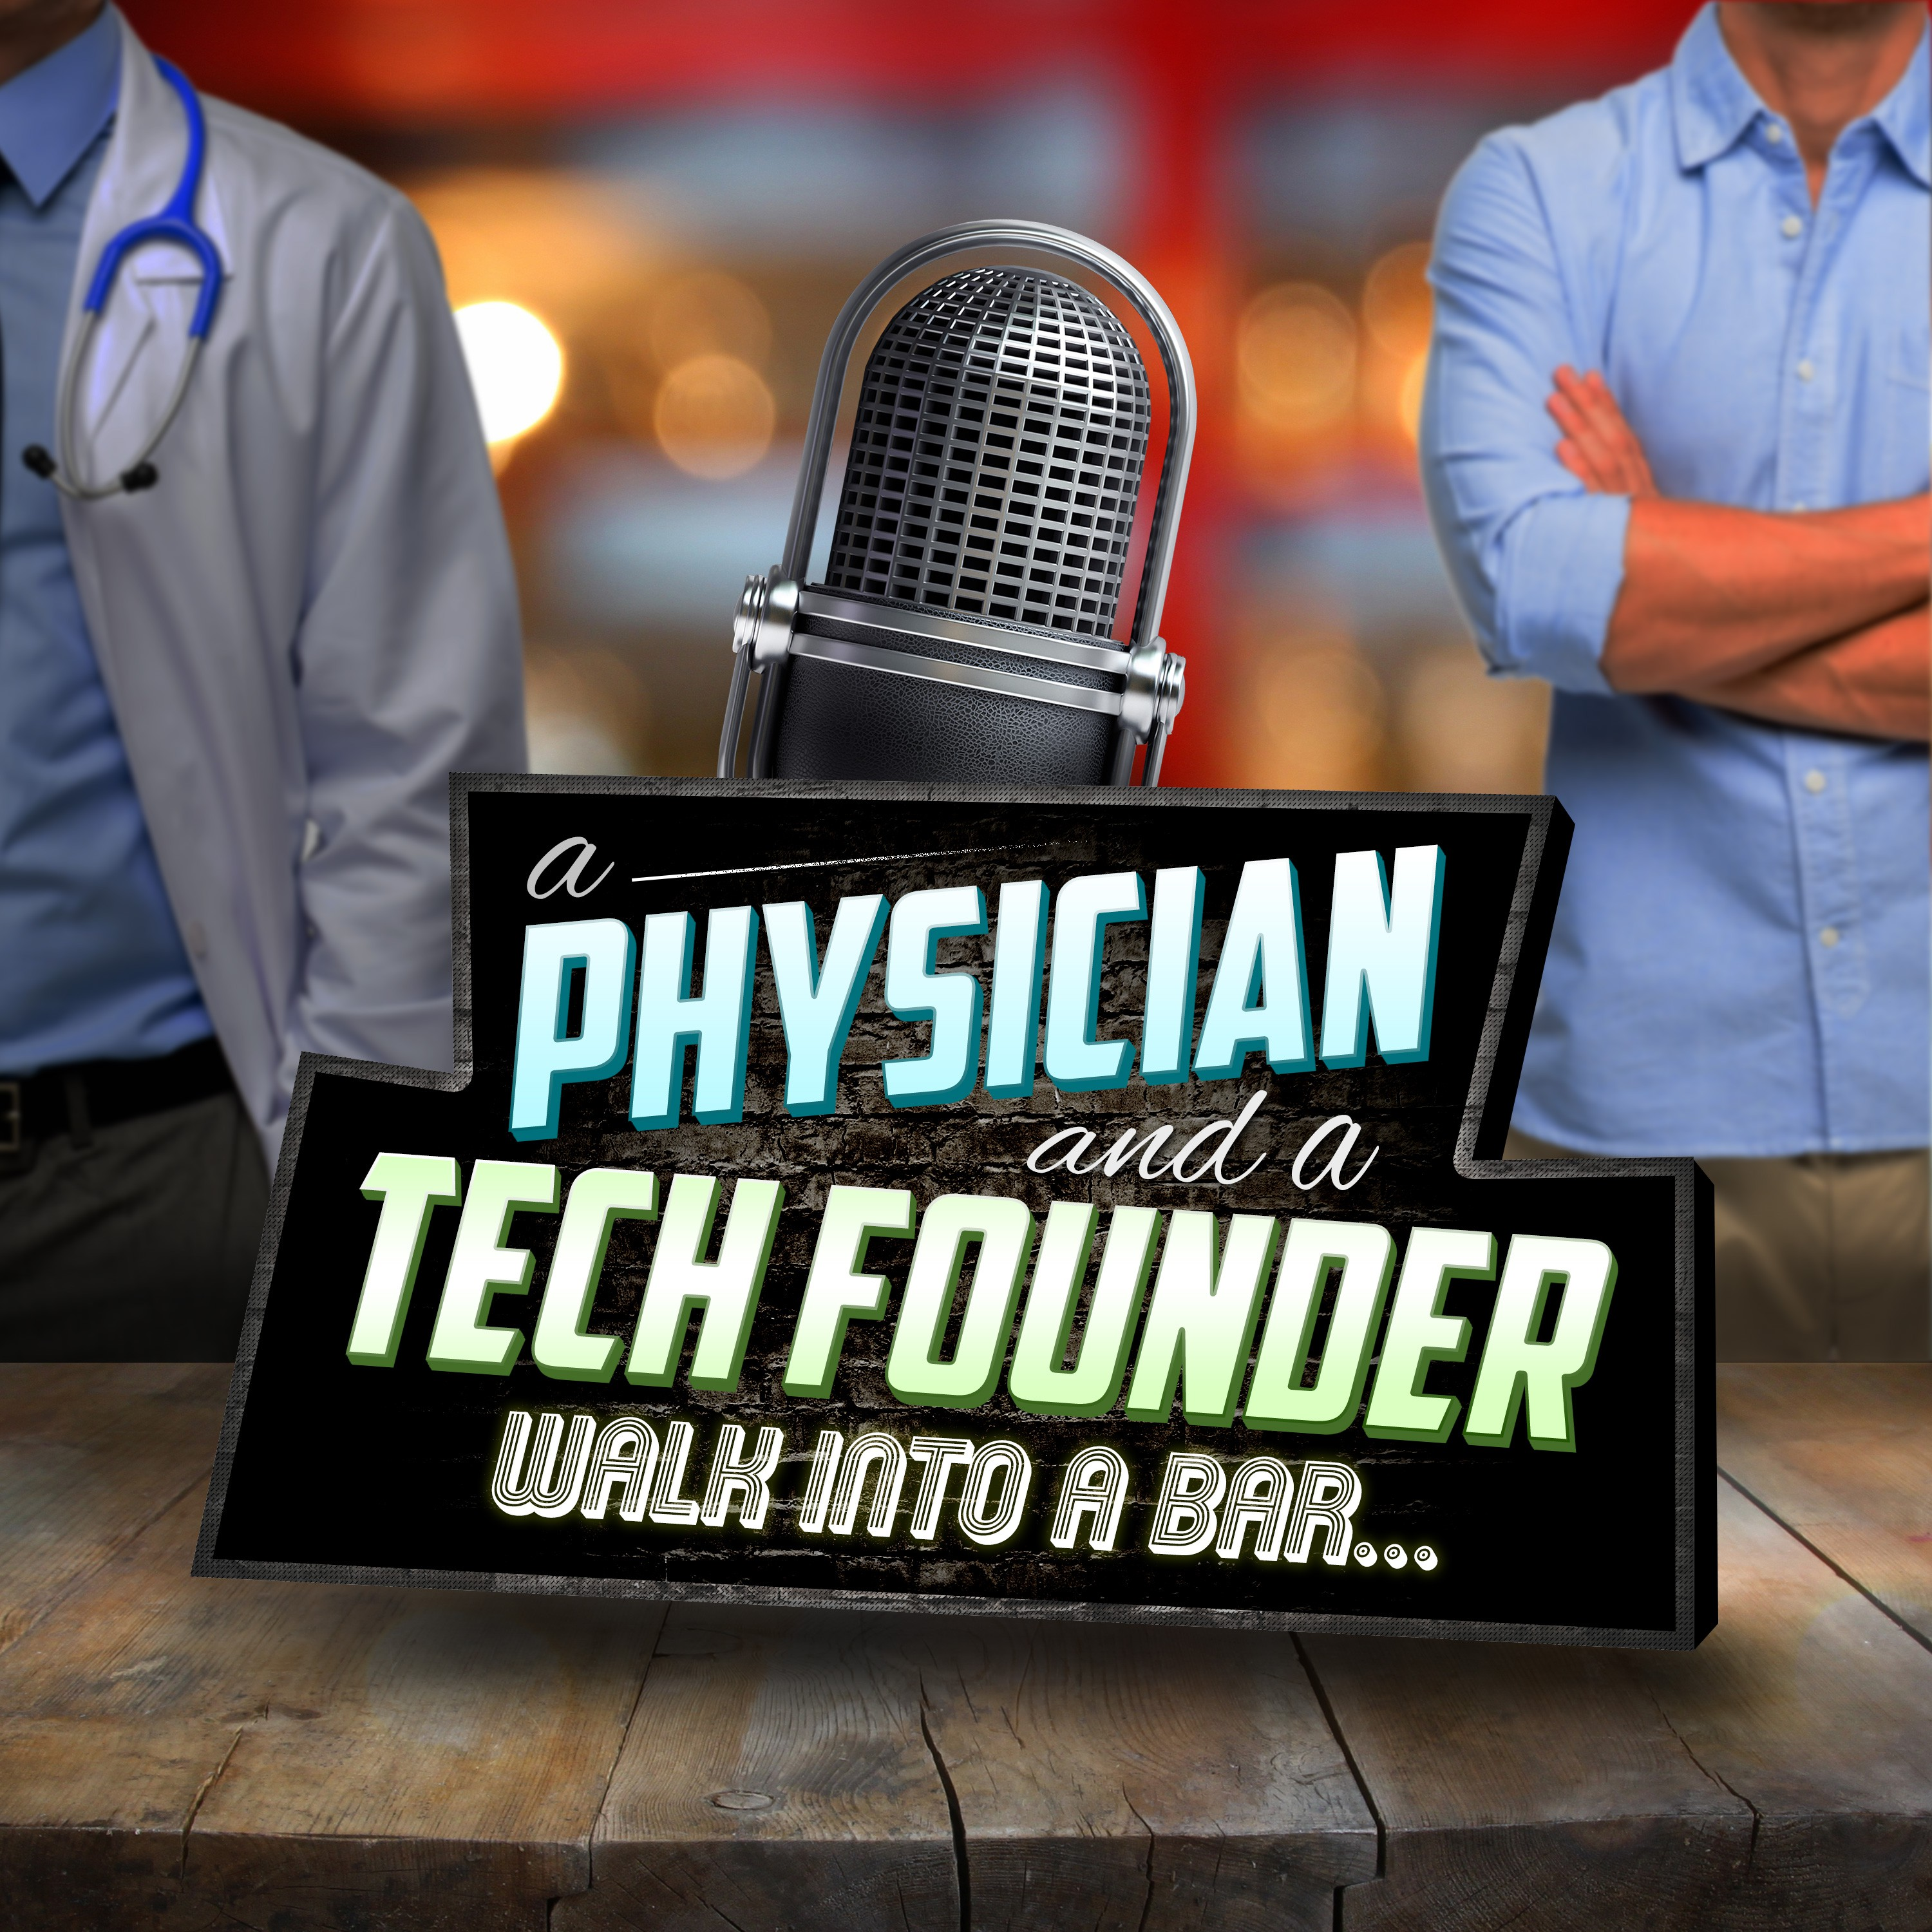 Design a podcast logo for a new podcast with a successful doctor and business tech founder.